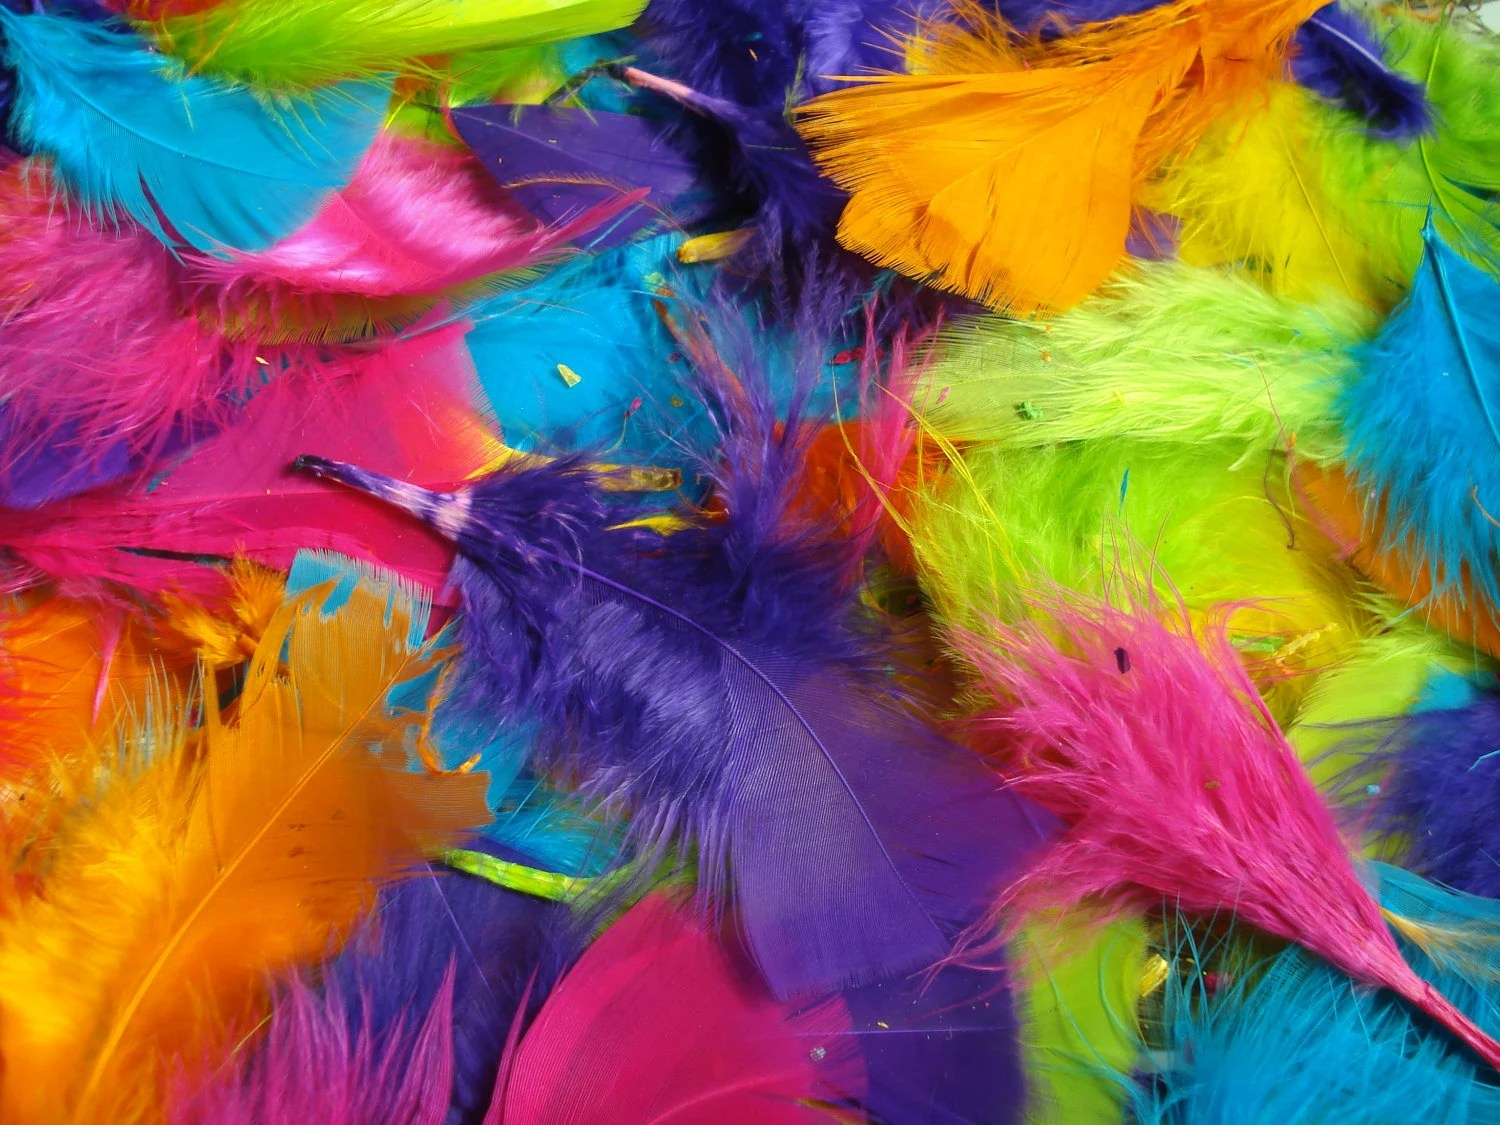 Pink Feathers Falling Wallpaper Bright Colored Feathers By Nelliesnicsnclips On Etsy